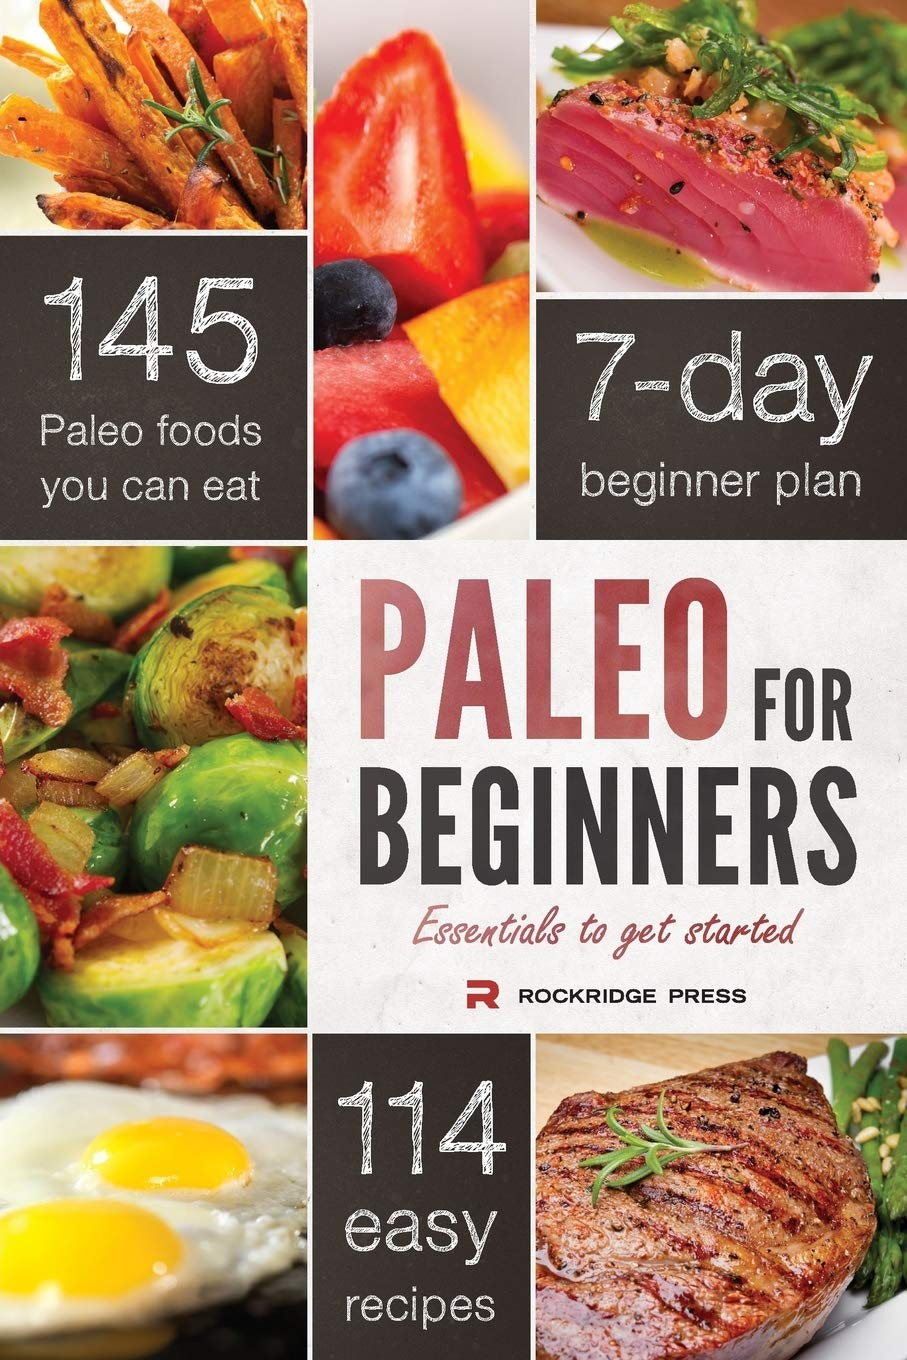 why did paleo diet get created